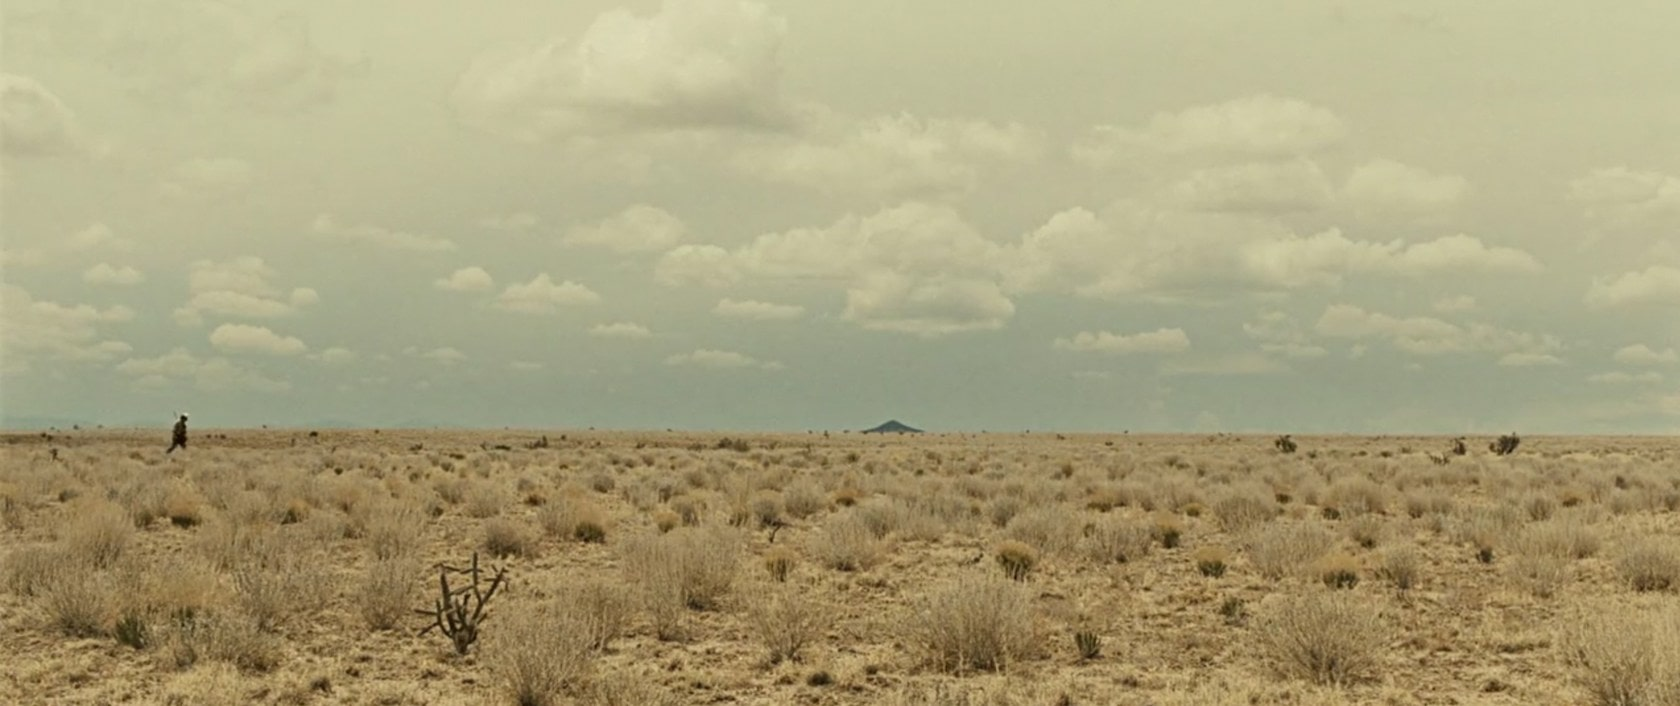 Working Cinematographer - Cinematography in No Country for Old Men - ProductionBeast